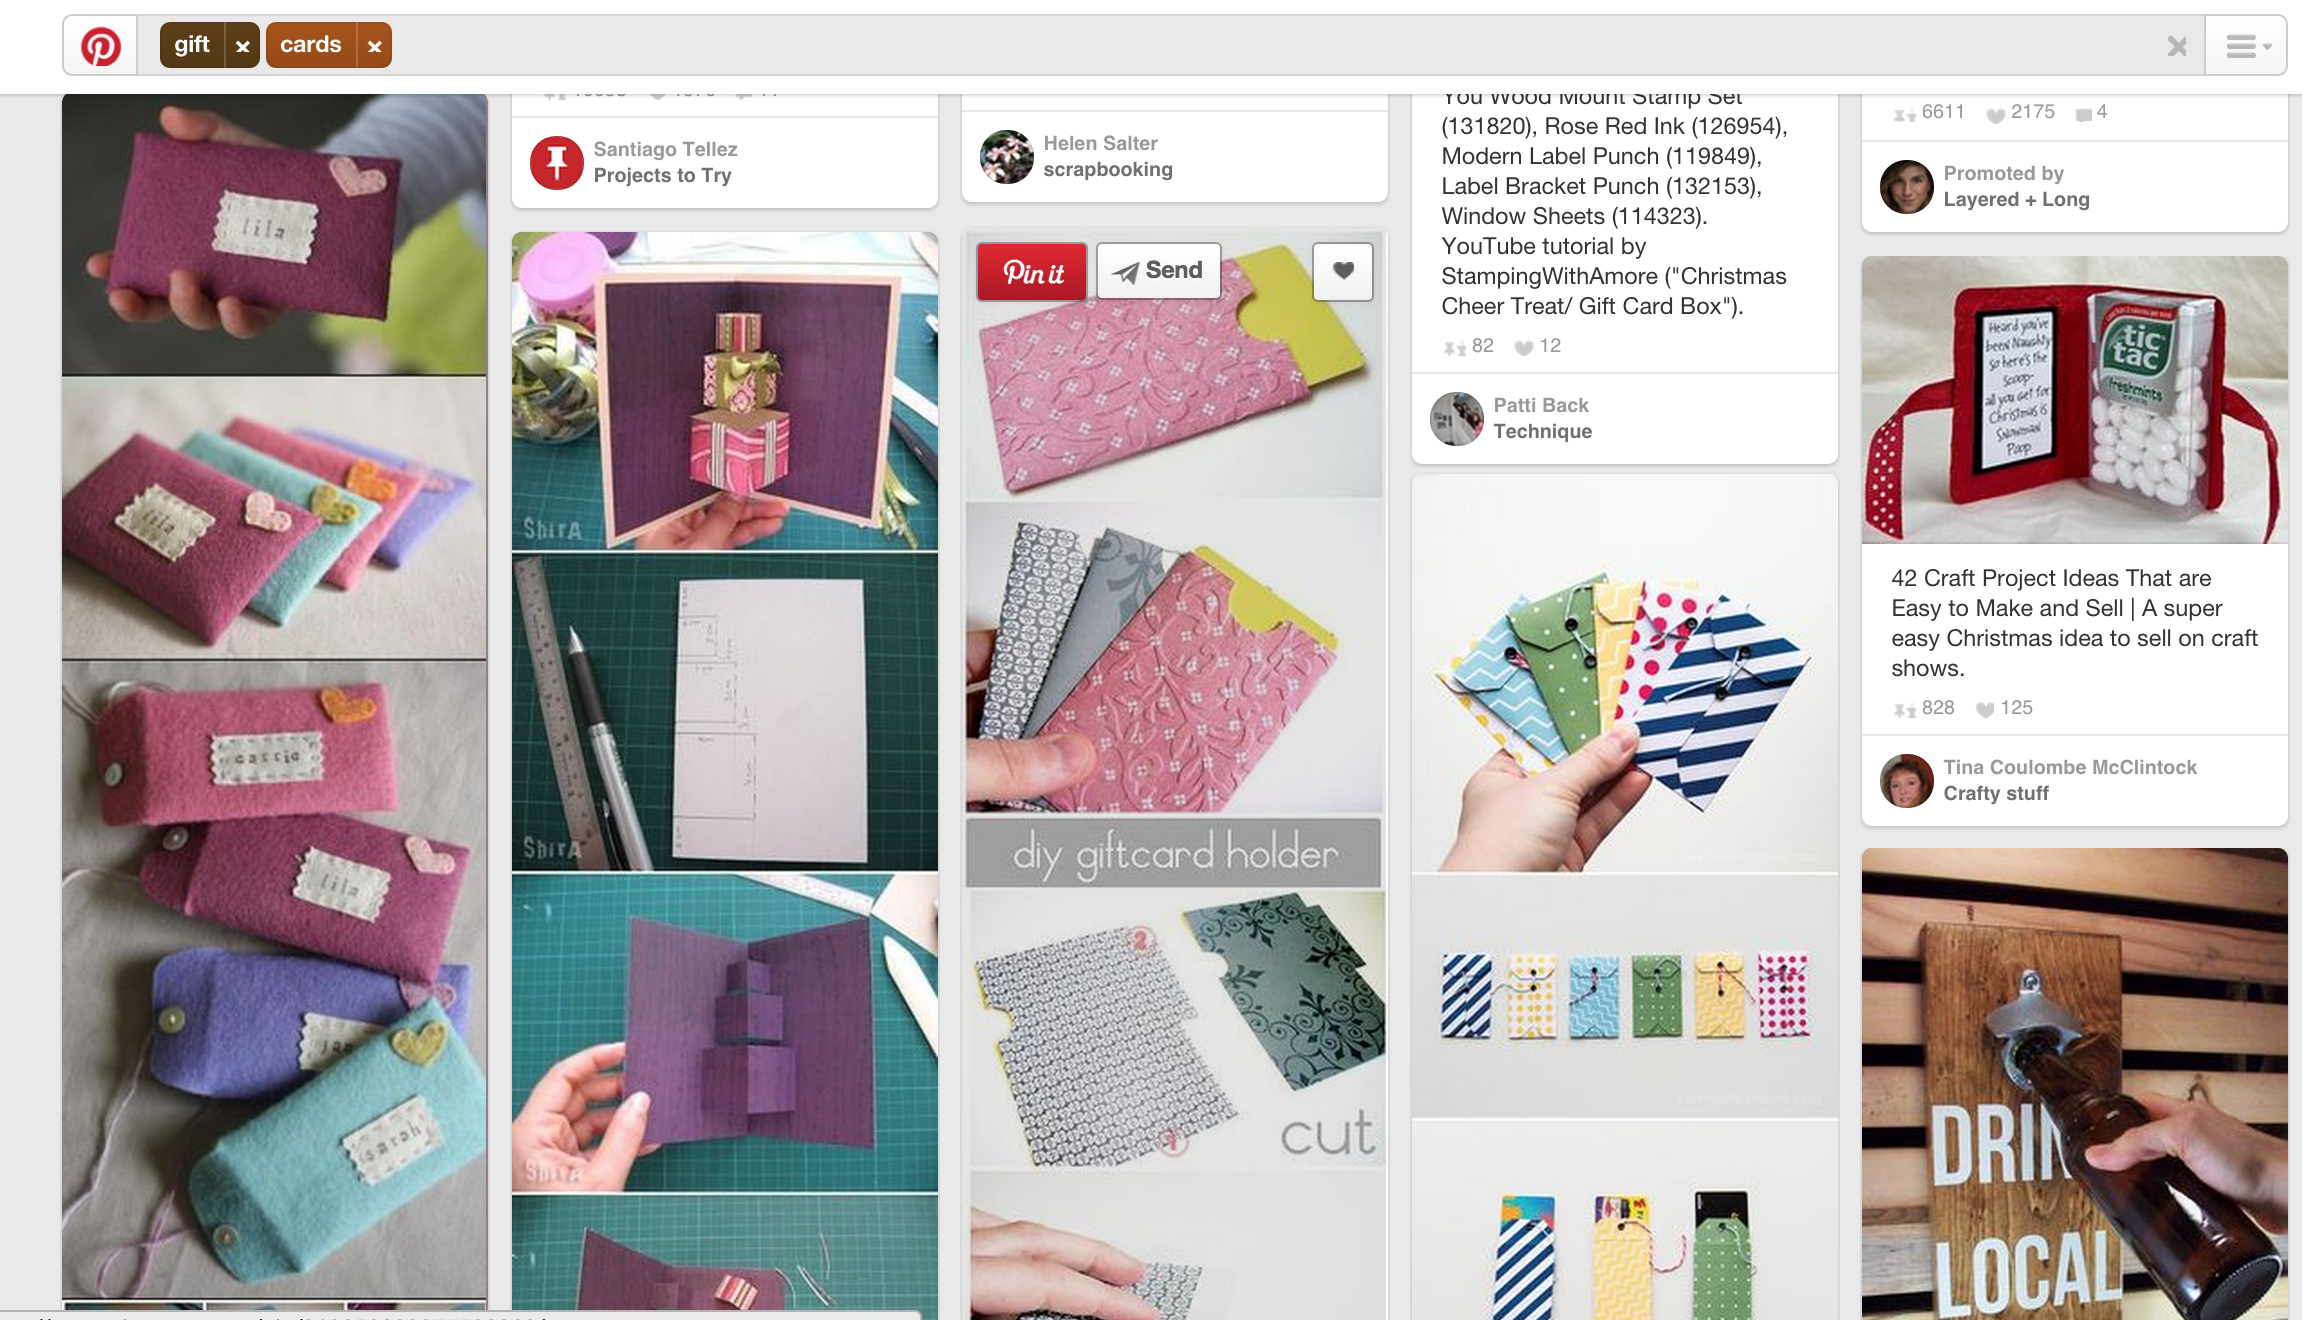 giftcards2 pinterest want your gift card displays